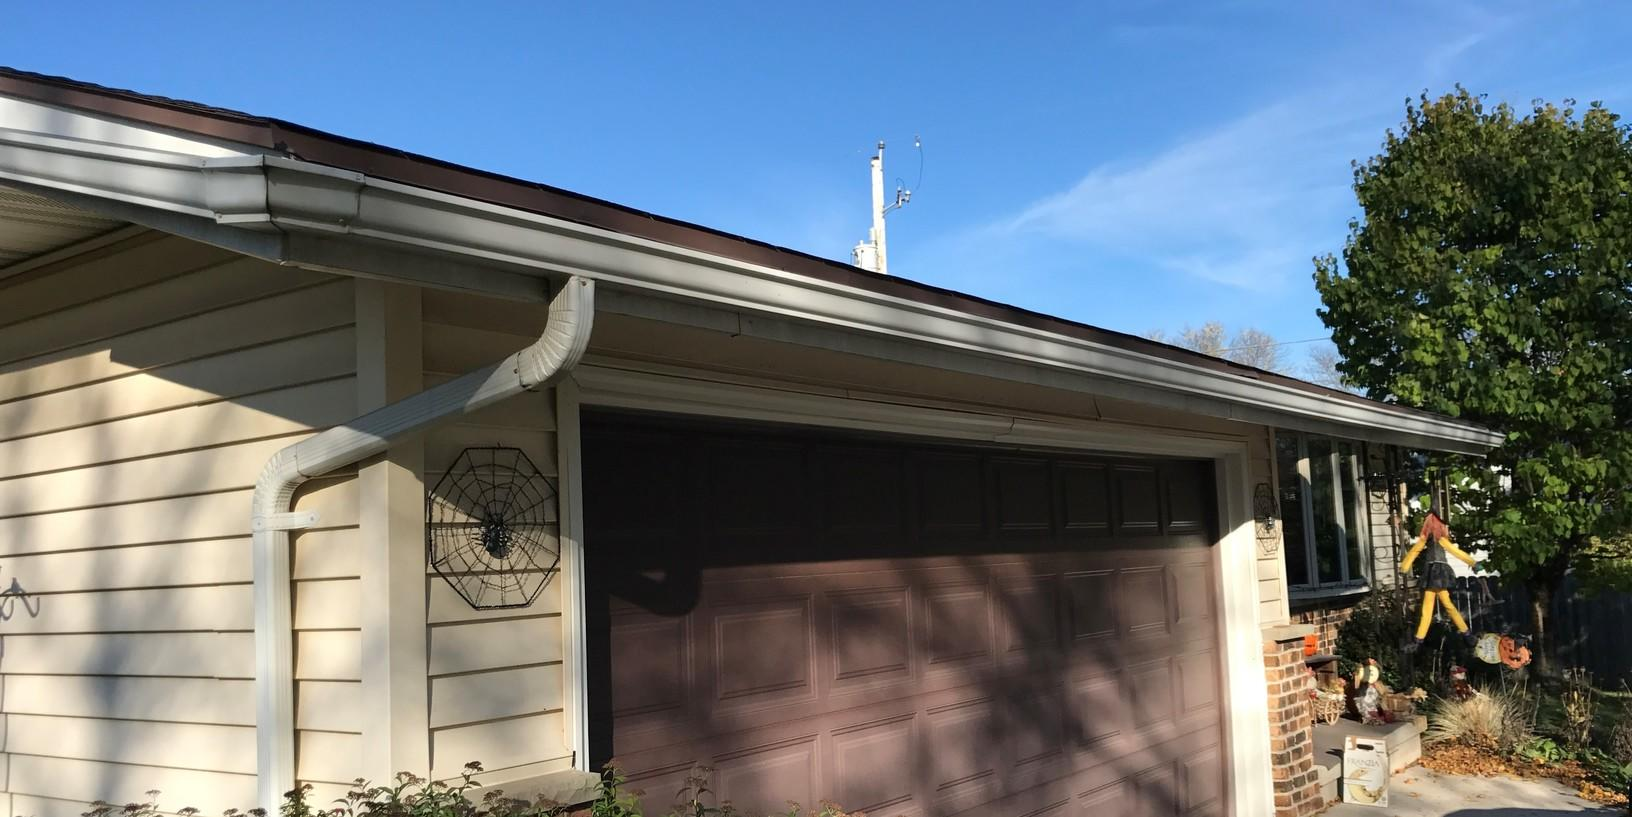 Replacing Open Style Gutters with LeafGuard in Sheboygan, WI - Before Photo